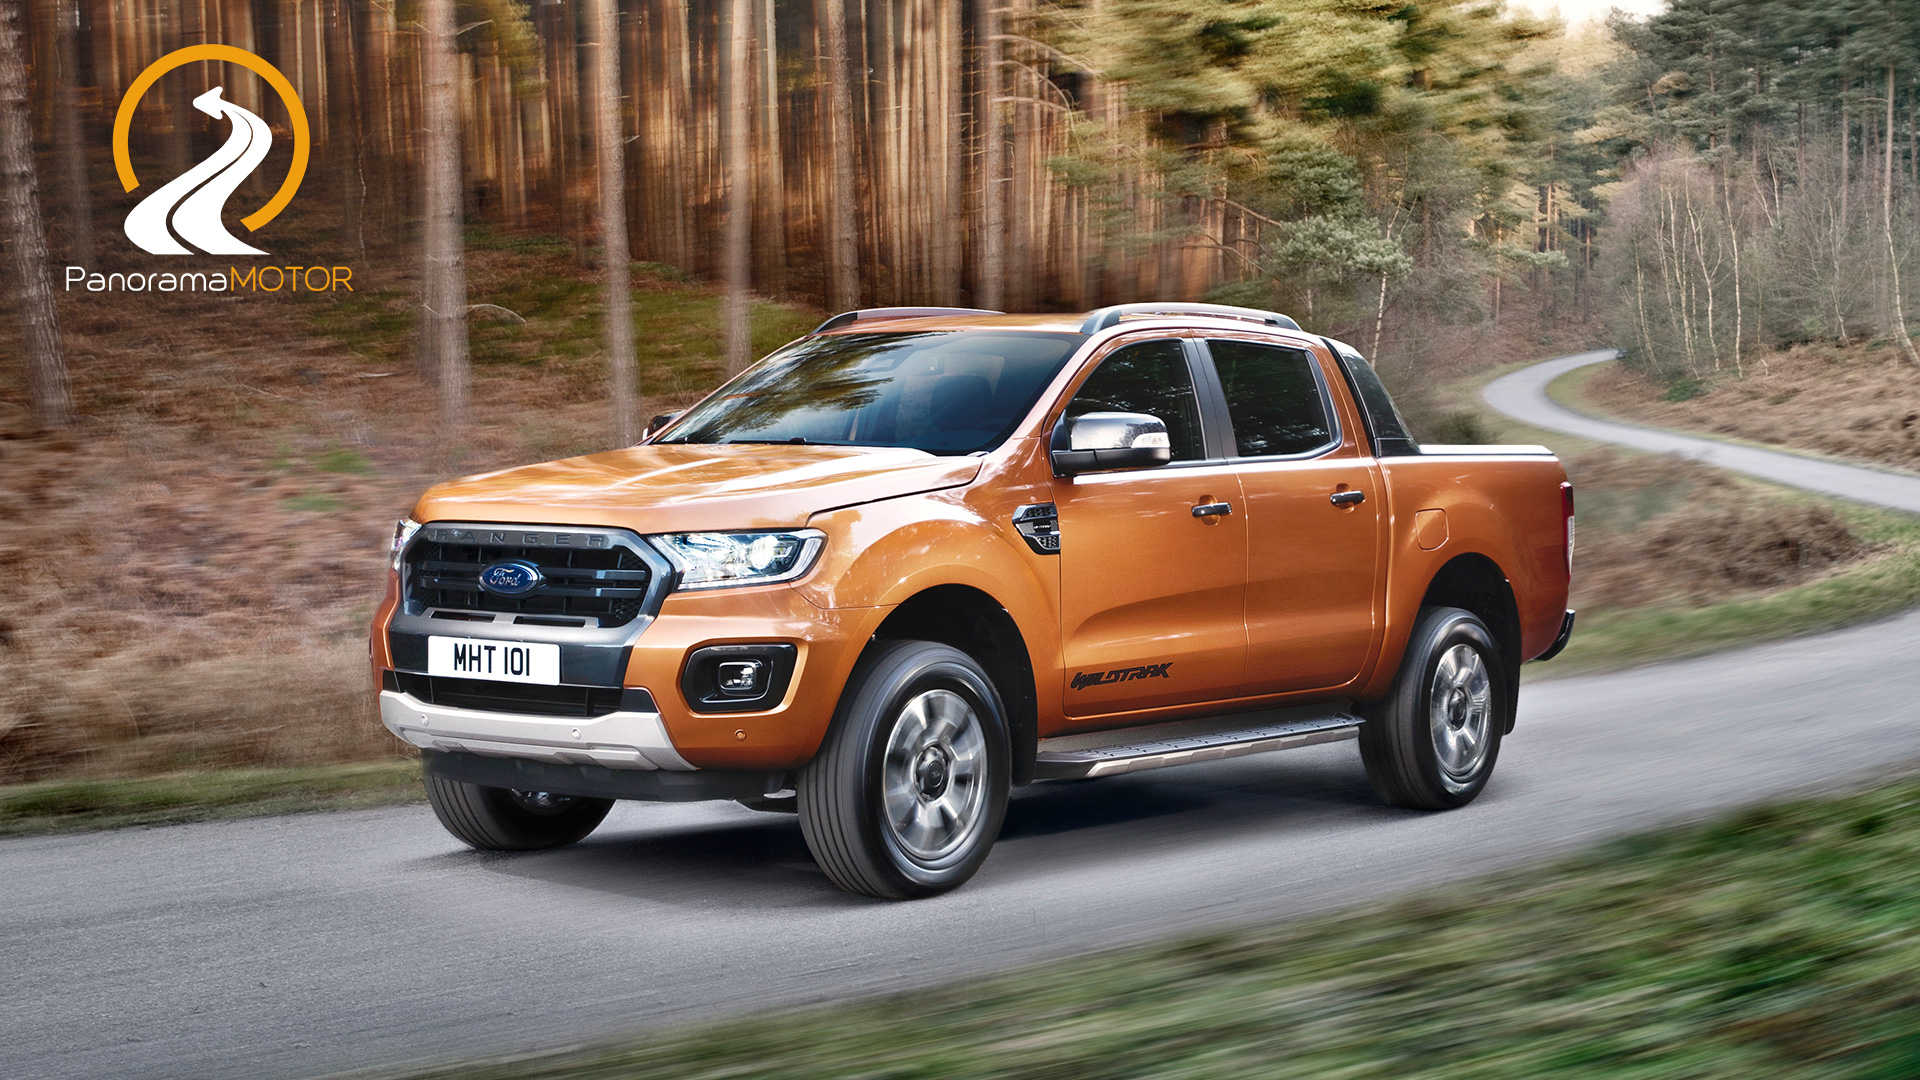 Ford Ranger Wildtrak 2019 Panorama Motor